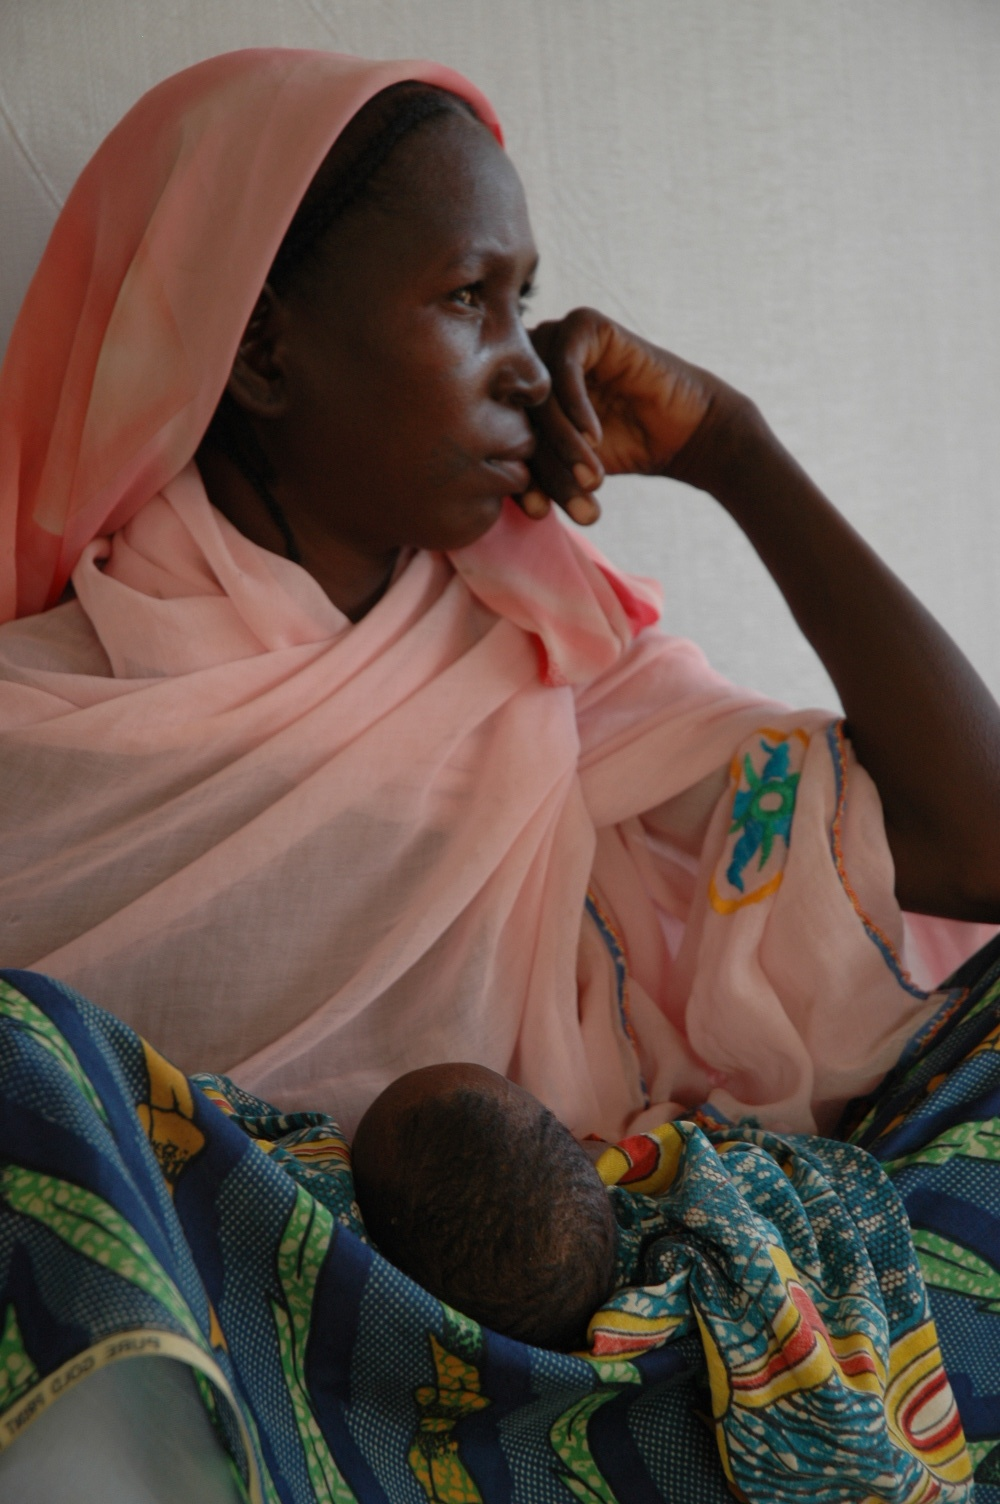 Nafissa Haboubacar with her two-month-old baby at an intensive care nutrition centre, Zinder, Niger